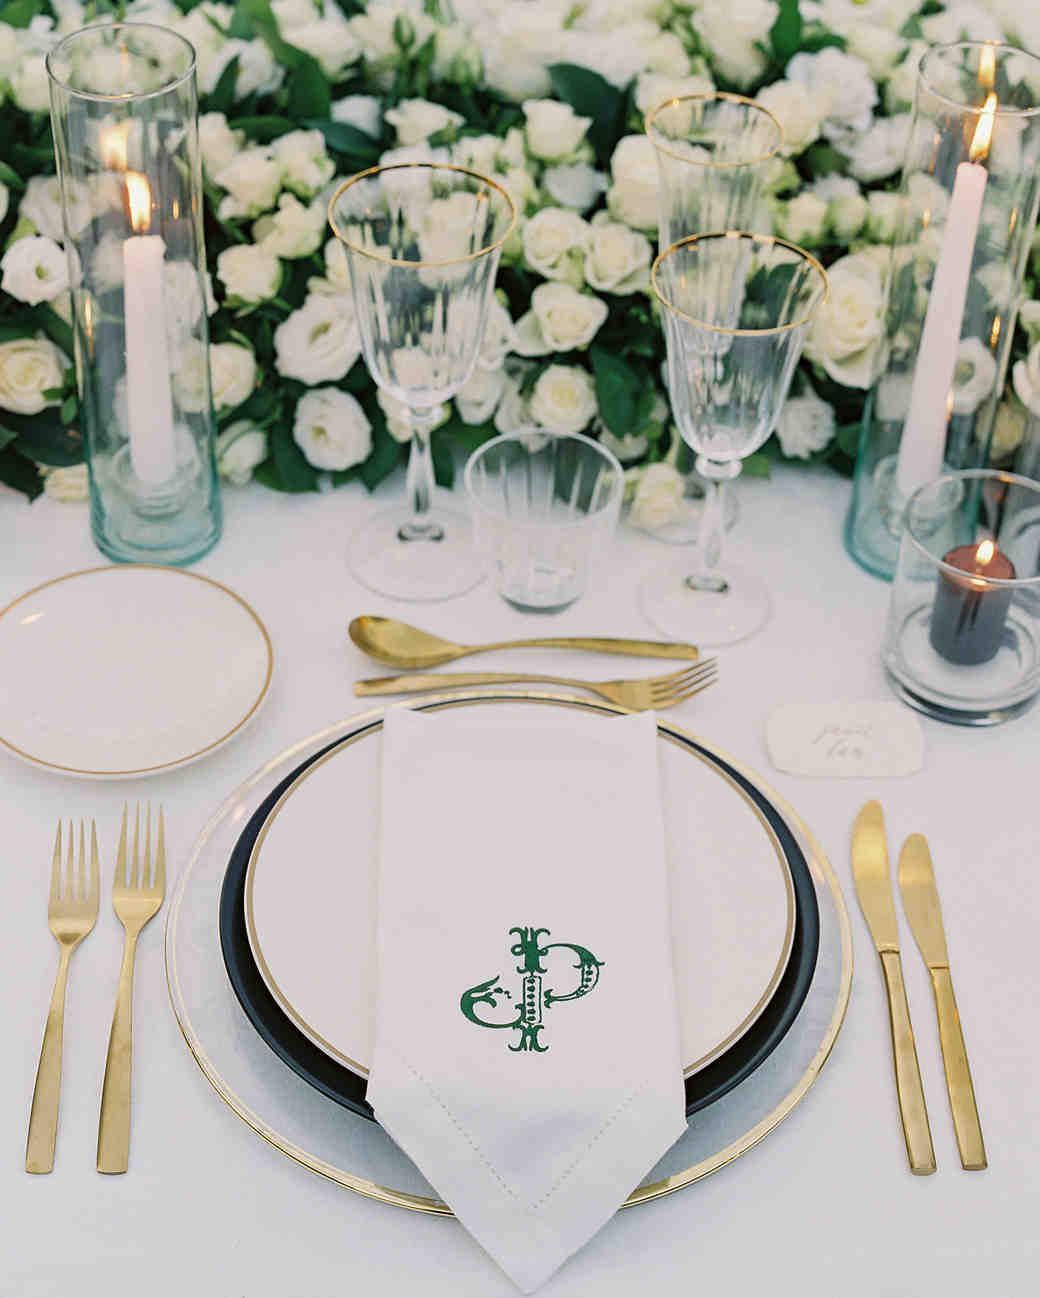 janet patrick wedding place setting with gold silverware